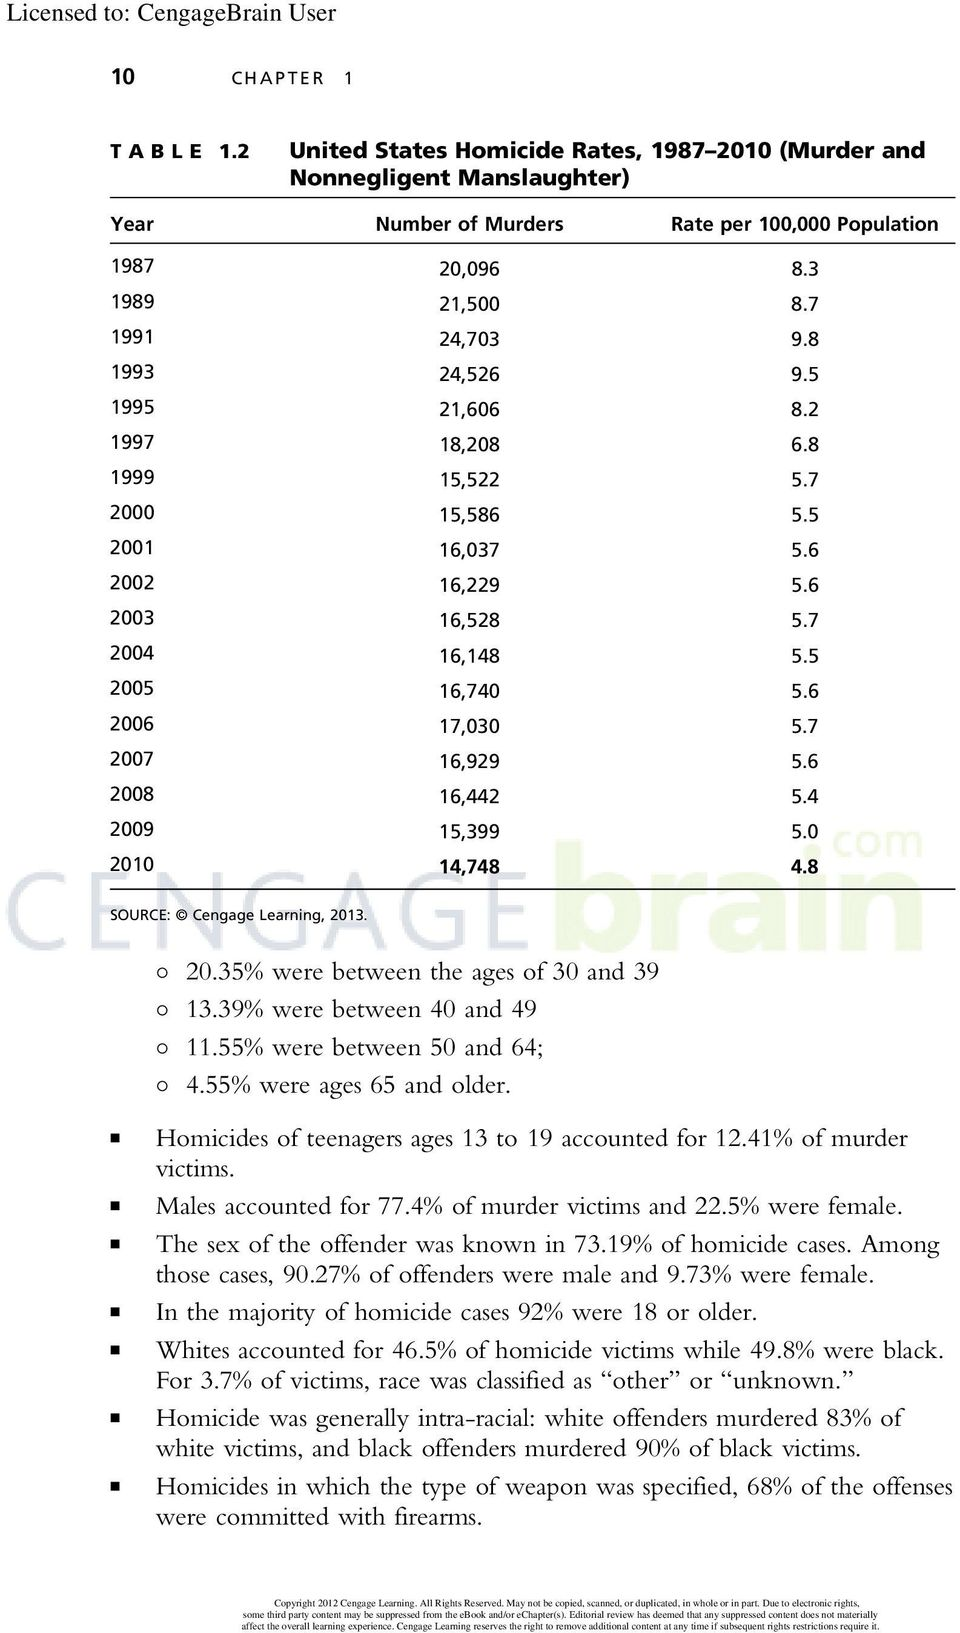 7 2007 16,929 5.6 2008 16,442 5.4 2009 15,399 5.0 2010 14,748 4.8 SOURCE: Cengage Learning, 2013. 20.35% were between the ages of 30 and 39 13.39% were between 40 and 49 11.